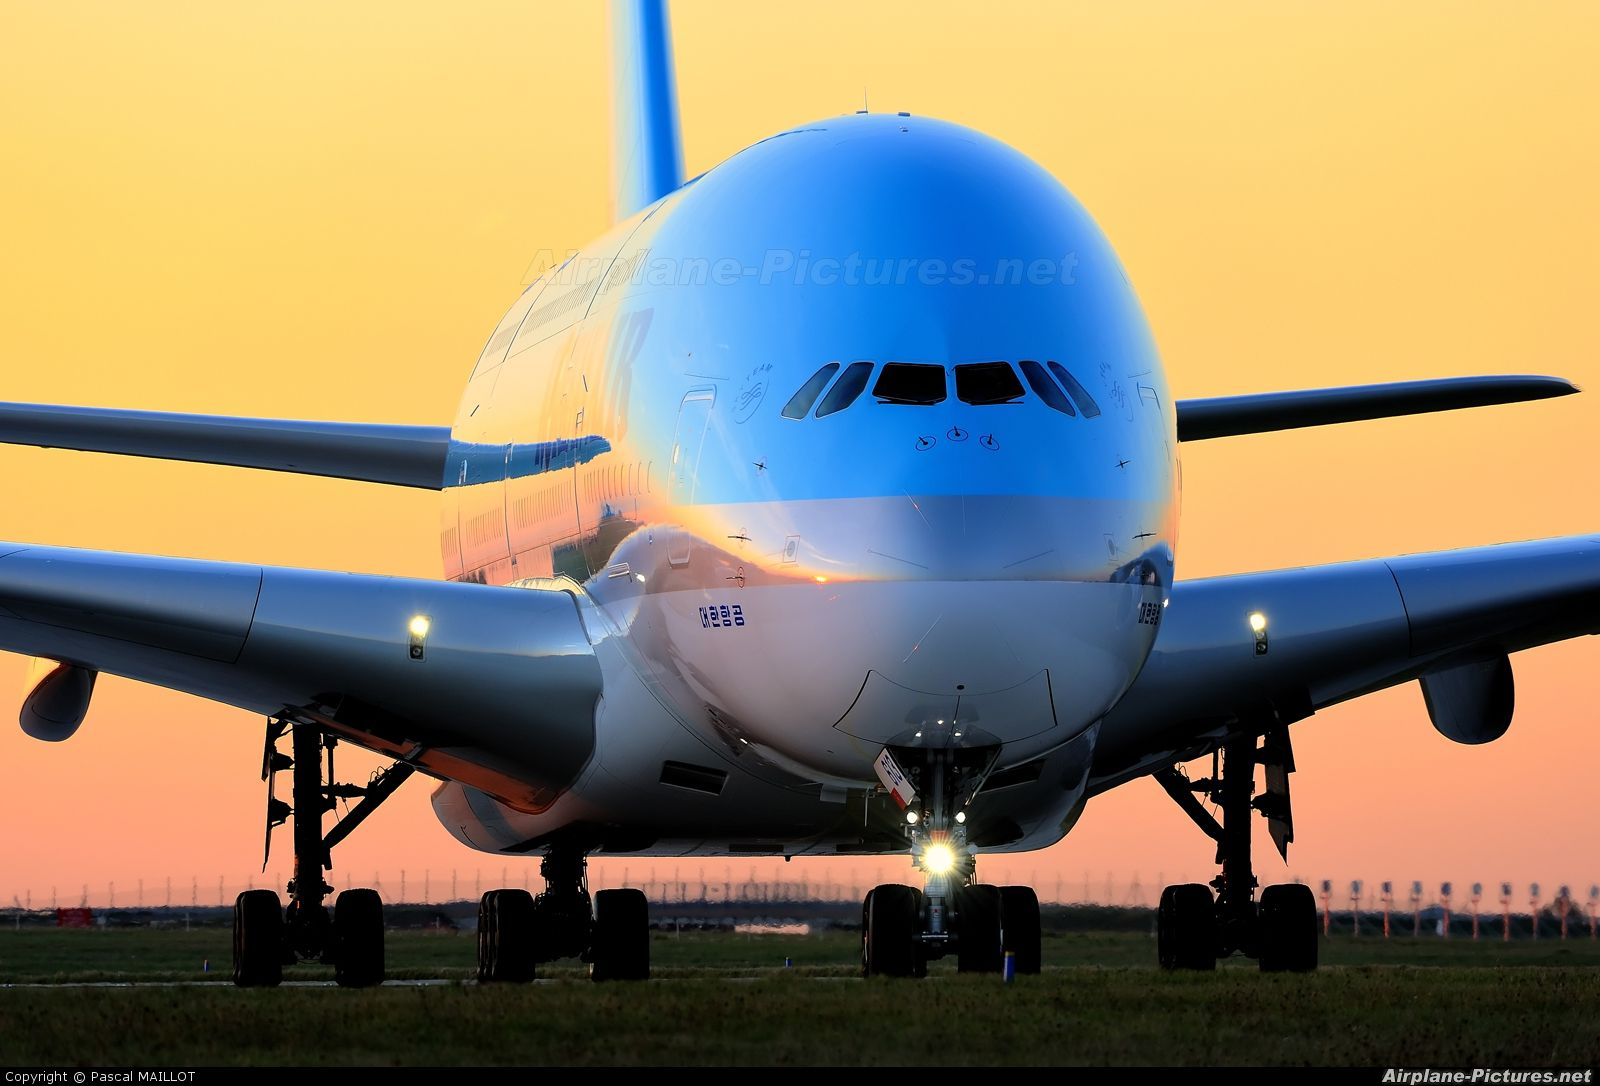 High quality photo of Korean Air Airbus A380 by Pascal MAILLOT. Visit Airplane-Pictures.net for creative aviation photography.